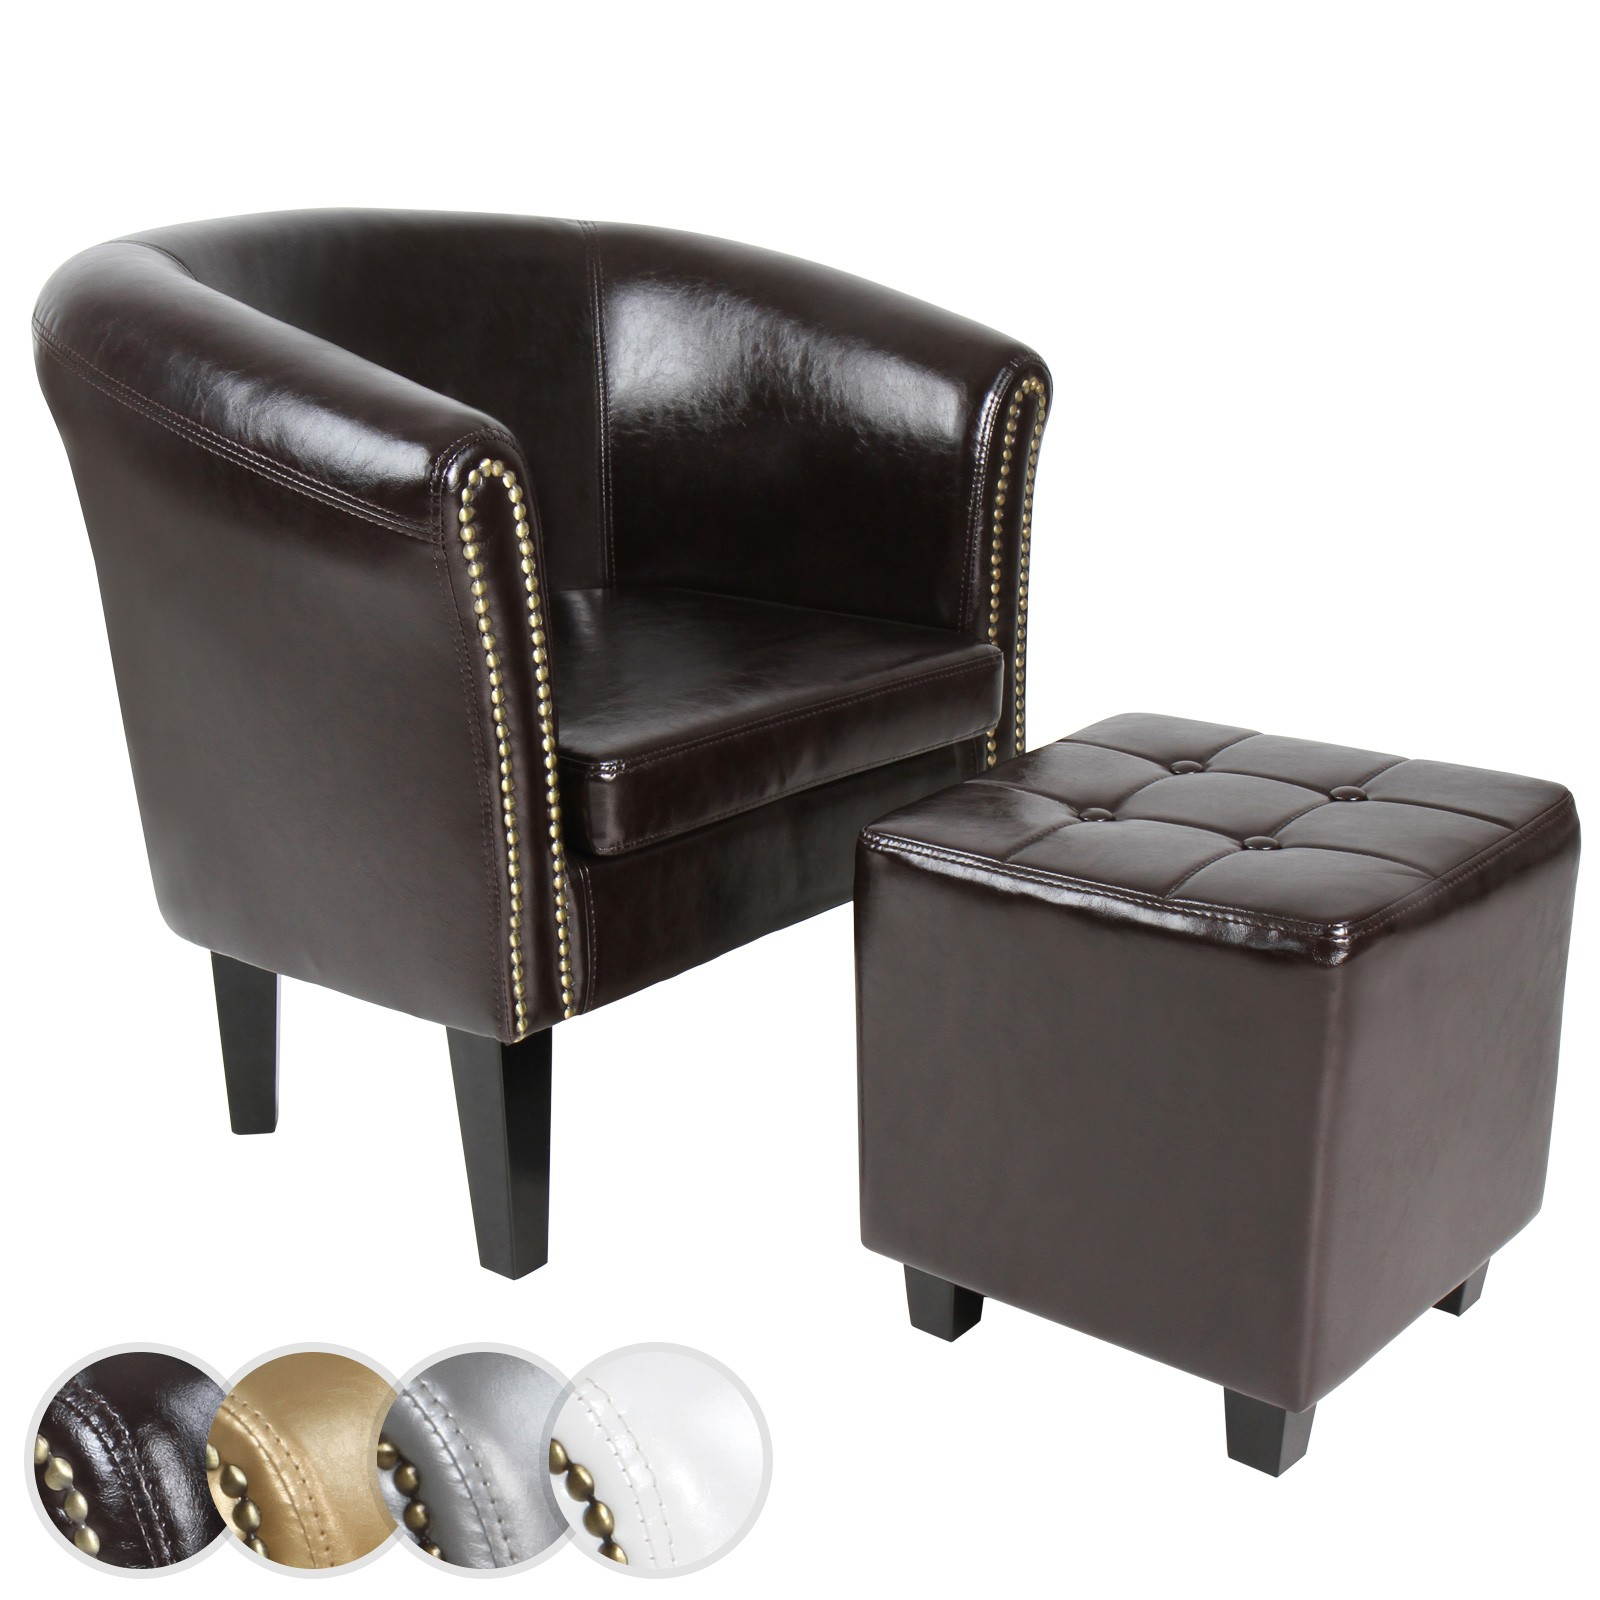 Chesterfield Sofa Und Hocker Chesterfield Sessel Hocker Clubsessel Sitzhocker Sofa